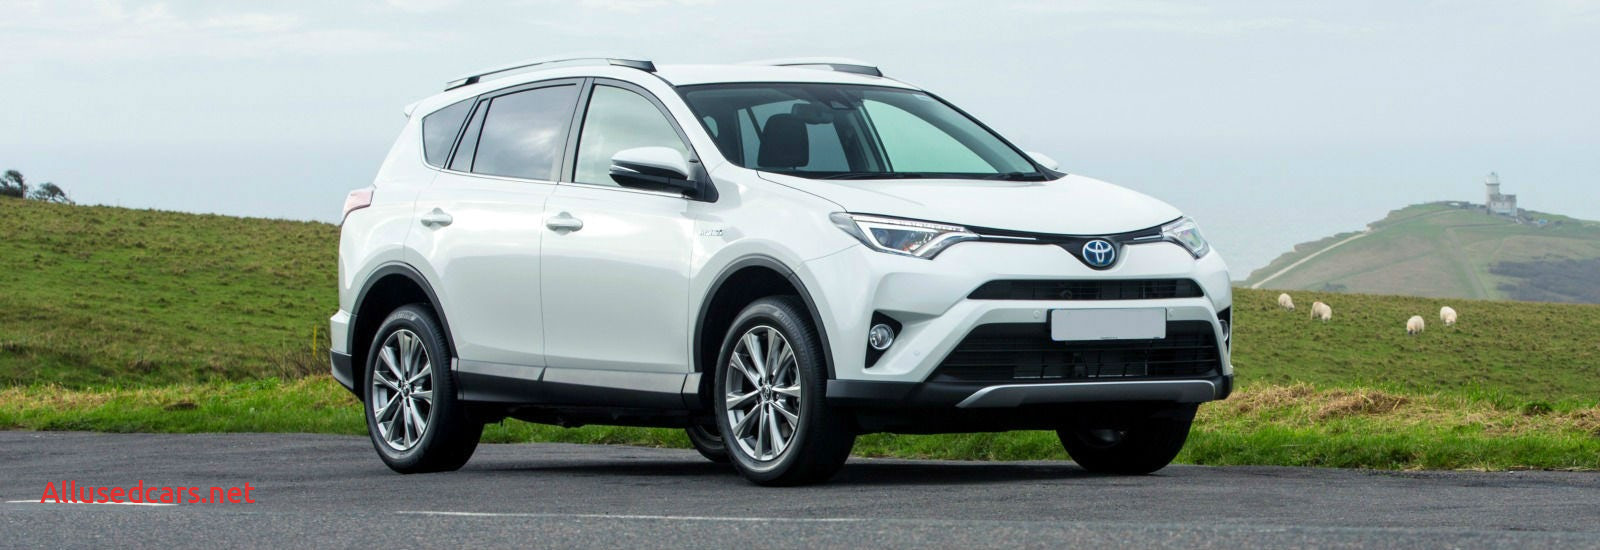 Best Hybird Suv Best Of the top 10 Best Hybrid Suvs and 4x4s 2017 18